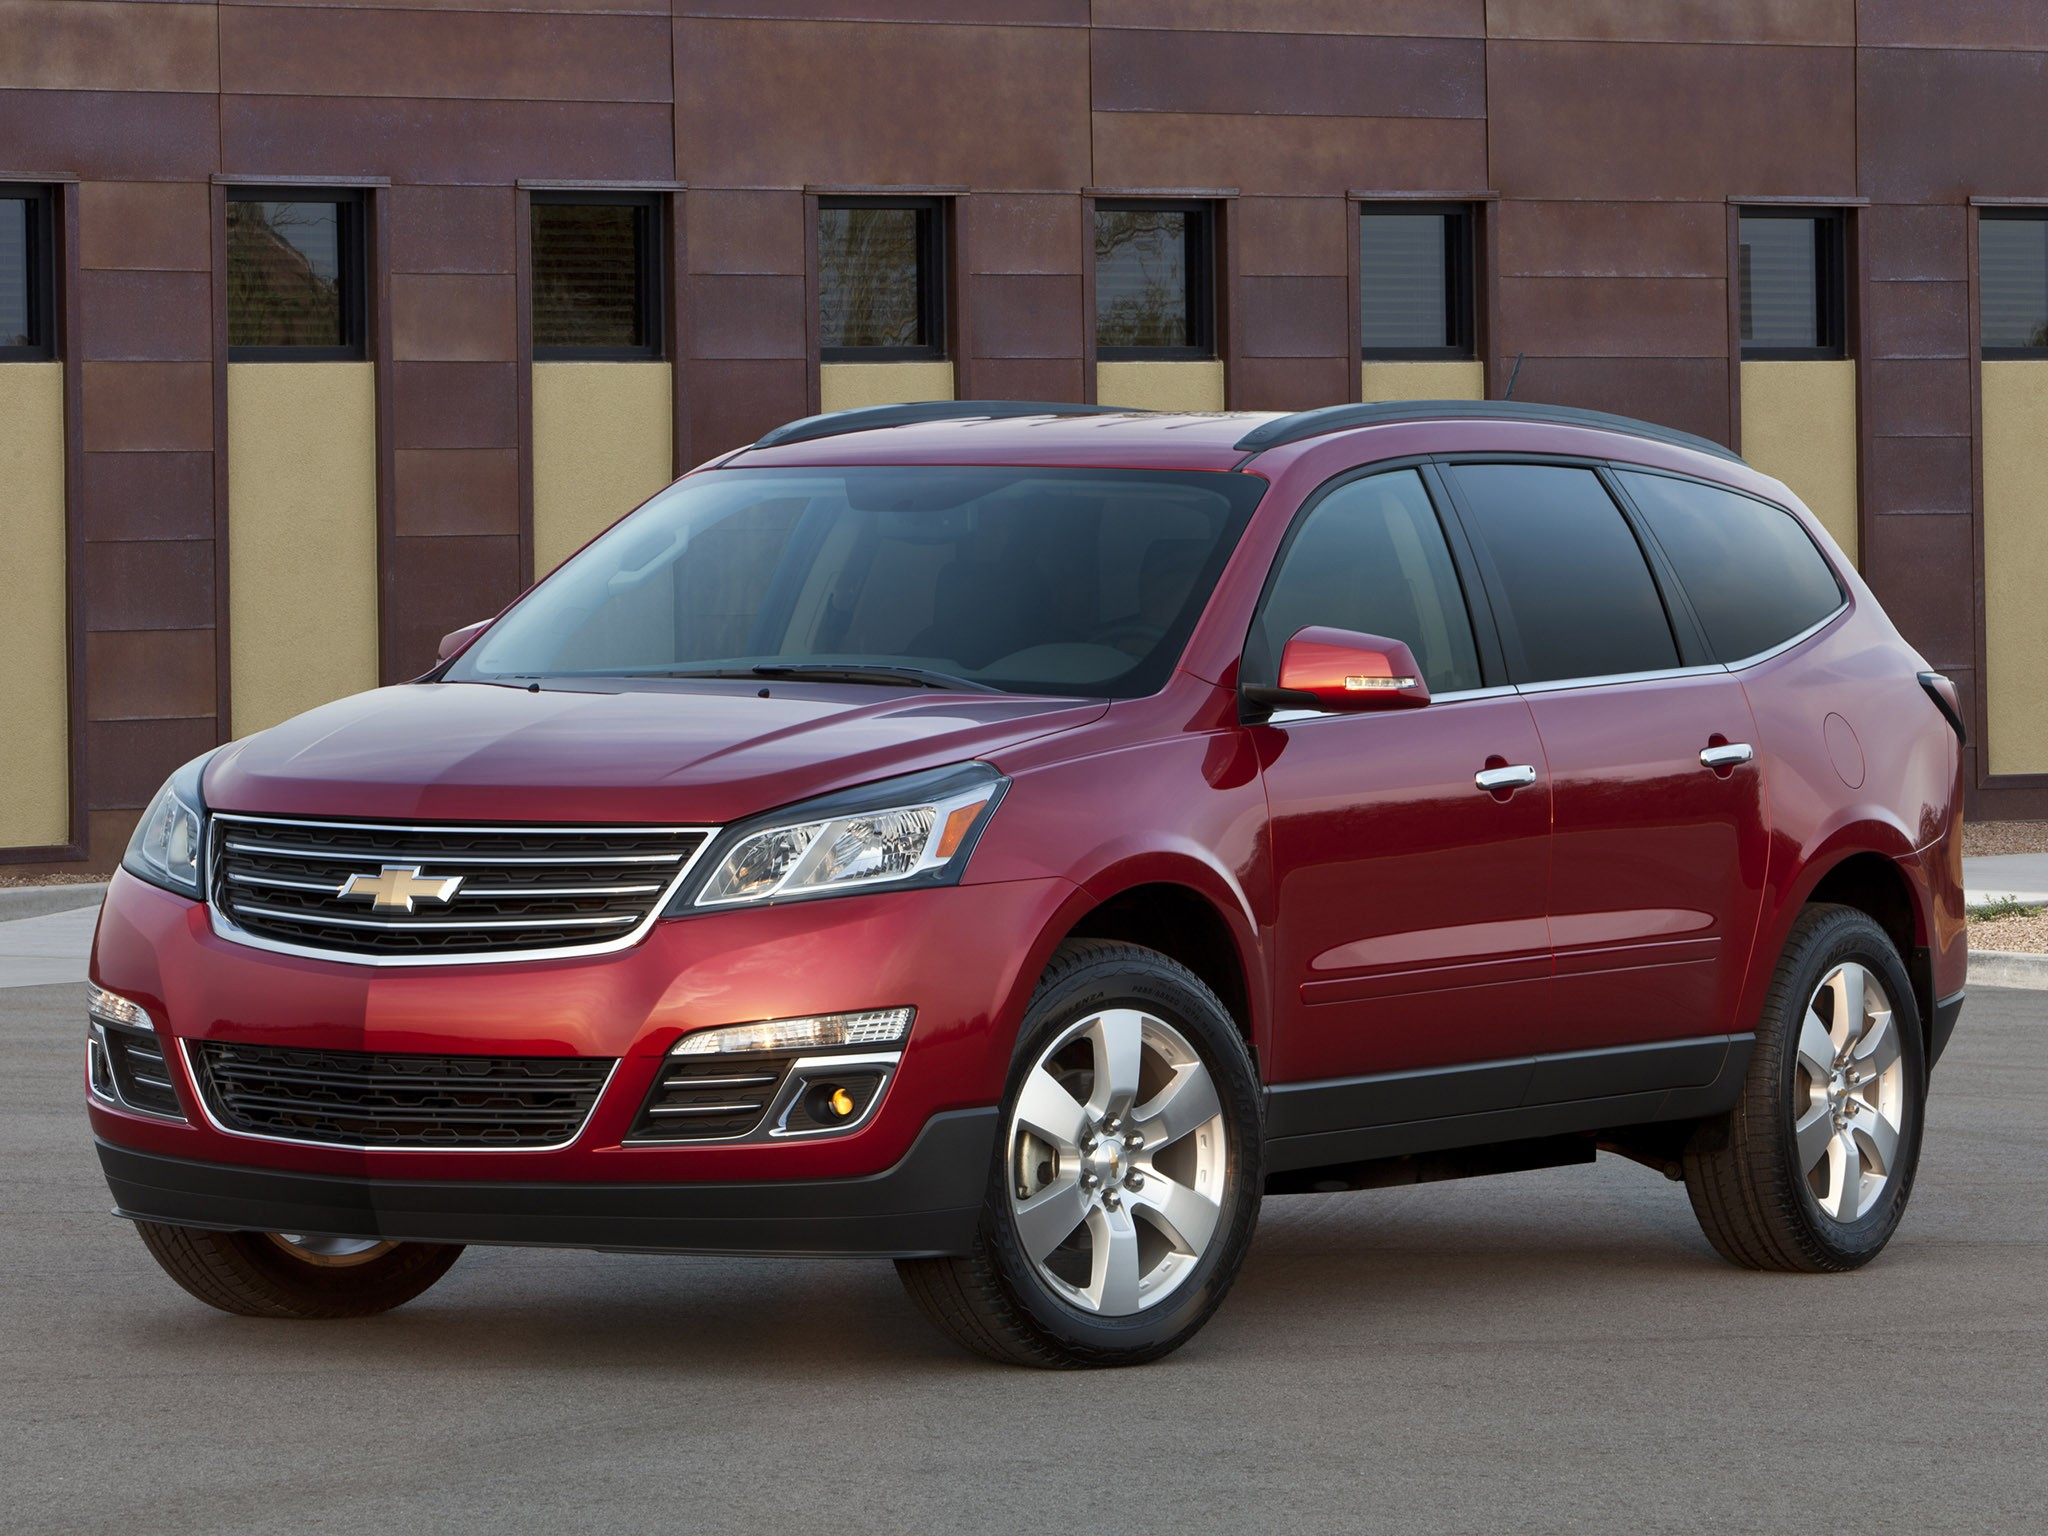 2012 Chevrolet Traverse Crossover